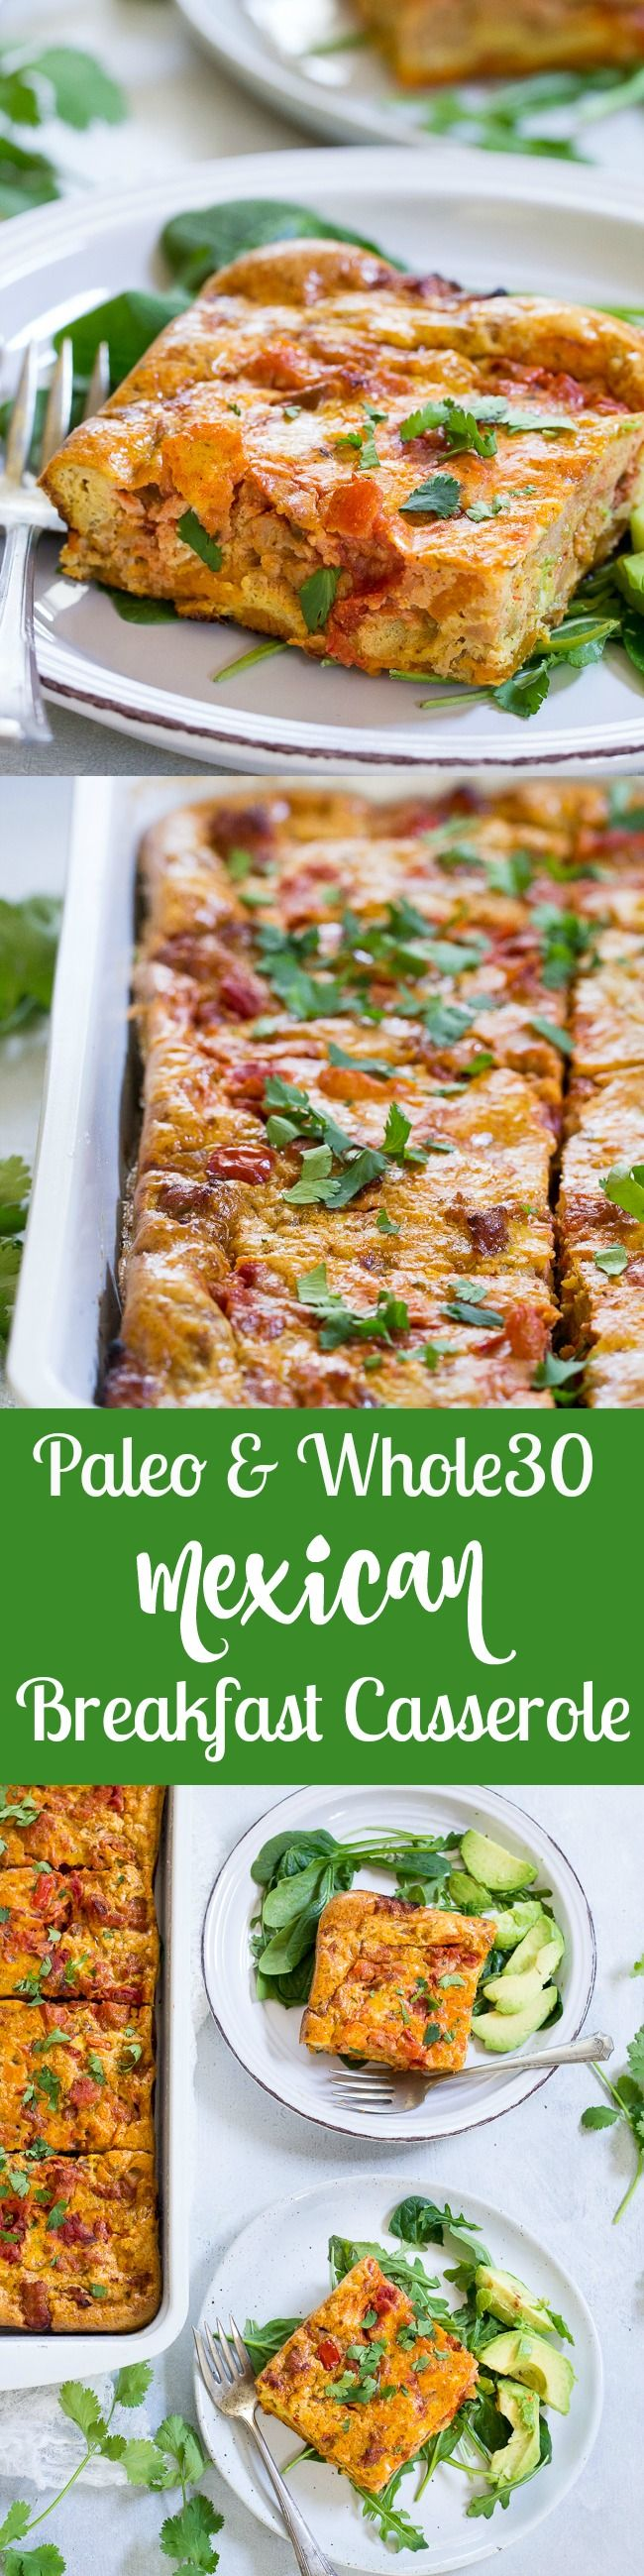 This Paleo and Whole30 Mexican Breakfast Casserole has a sweet potato crust and is packed with sausage, peppers and onions plus the perfect spices for an anytime-recipe that everyone will love – even kids!  Great to make ahead of time, too.  Gluten free, dairy free.